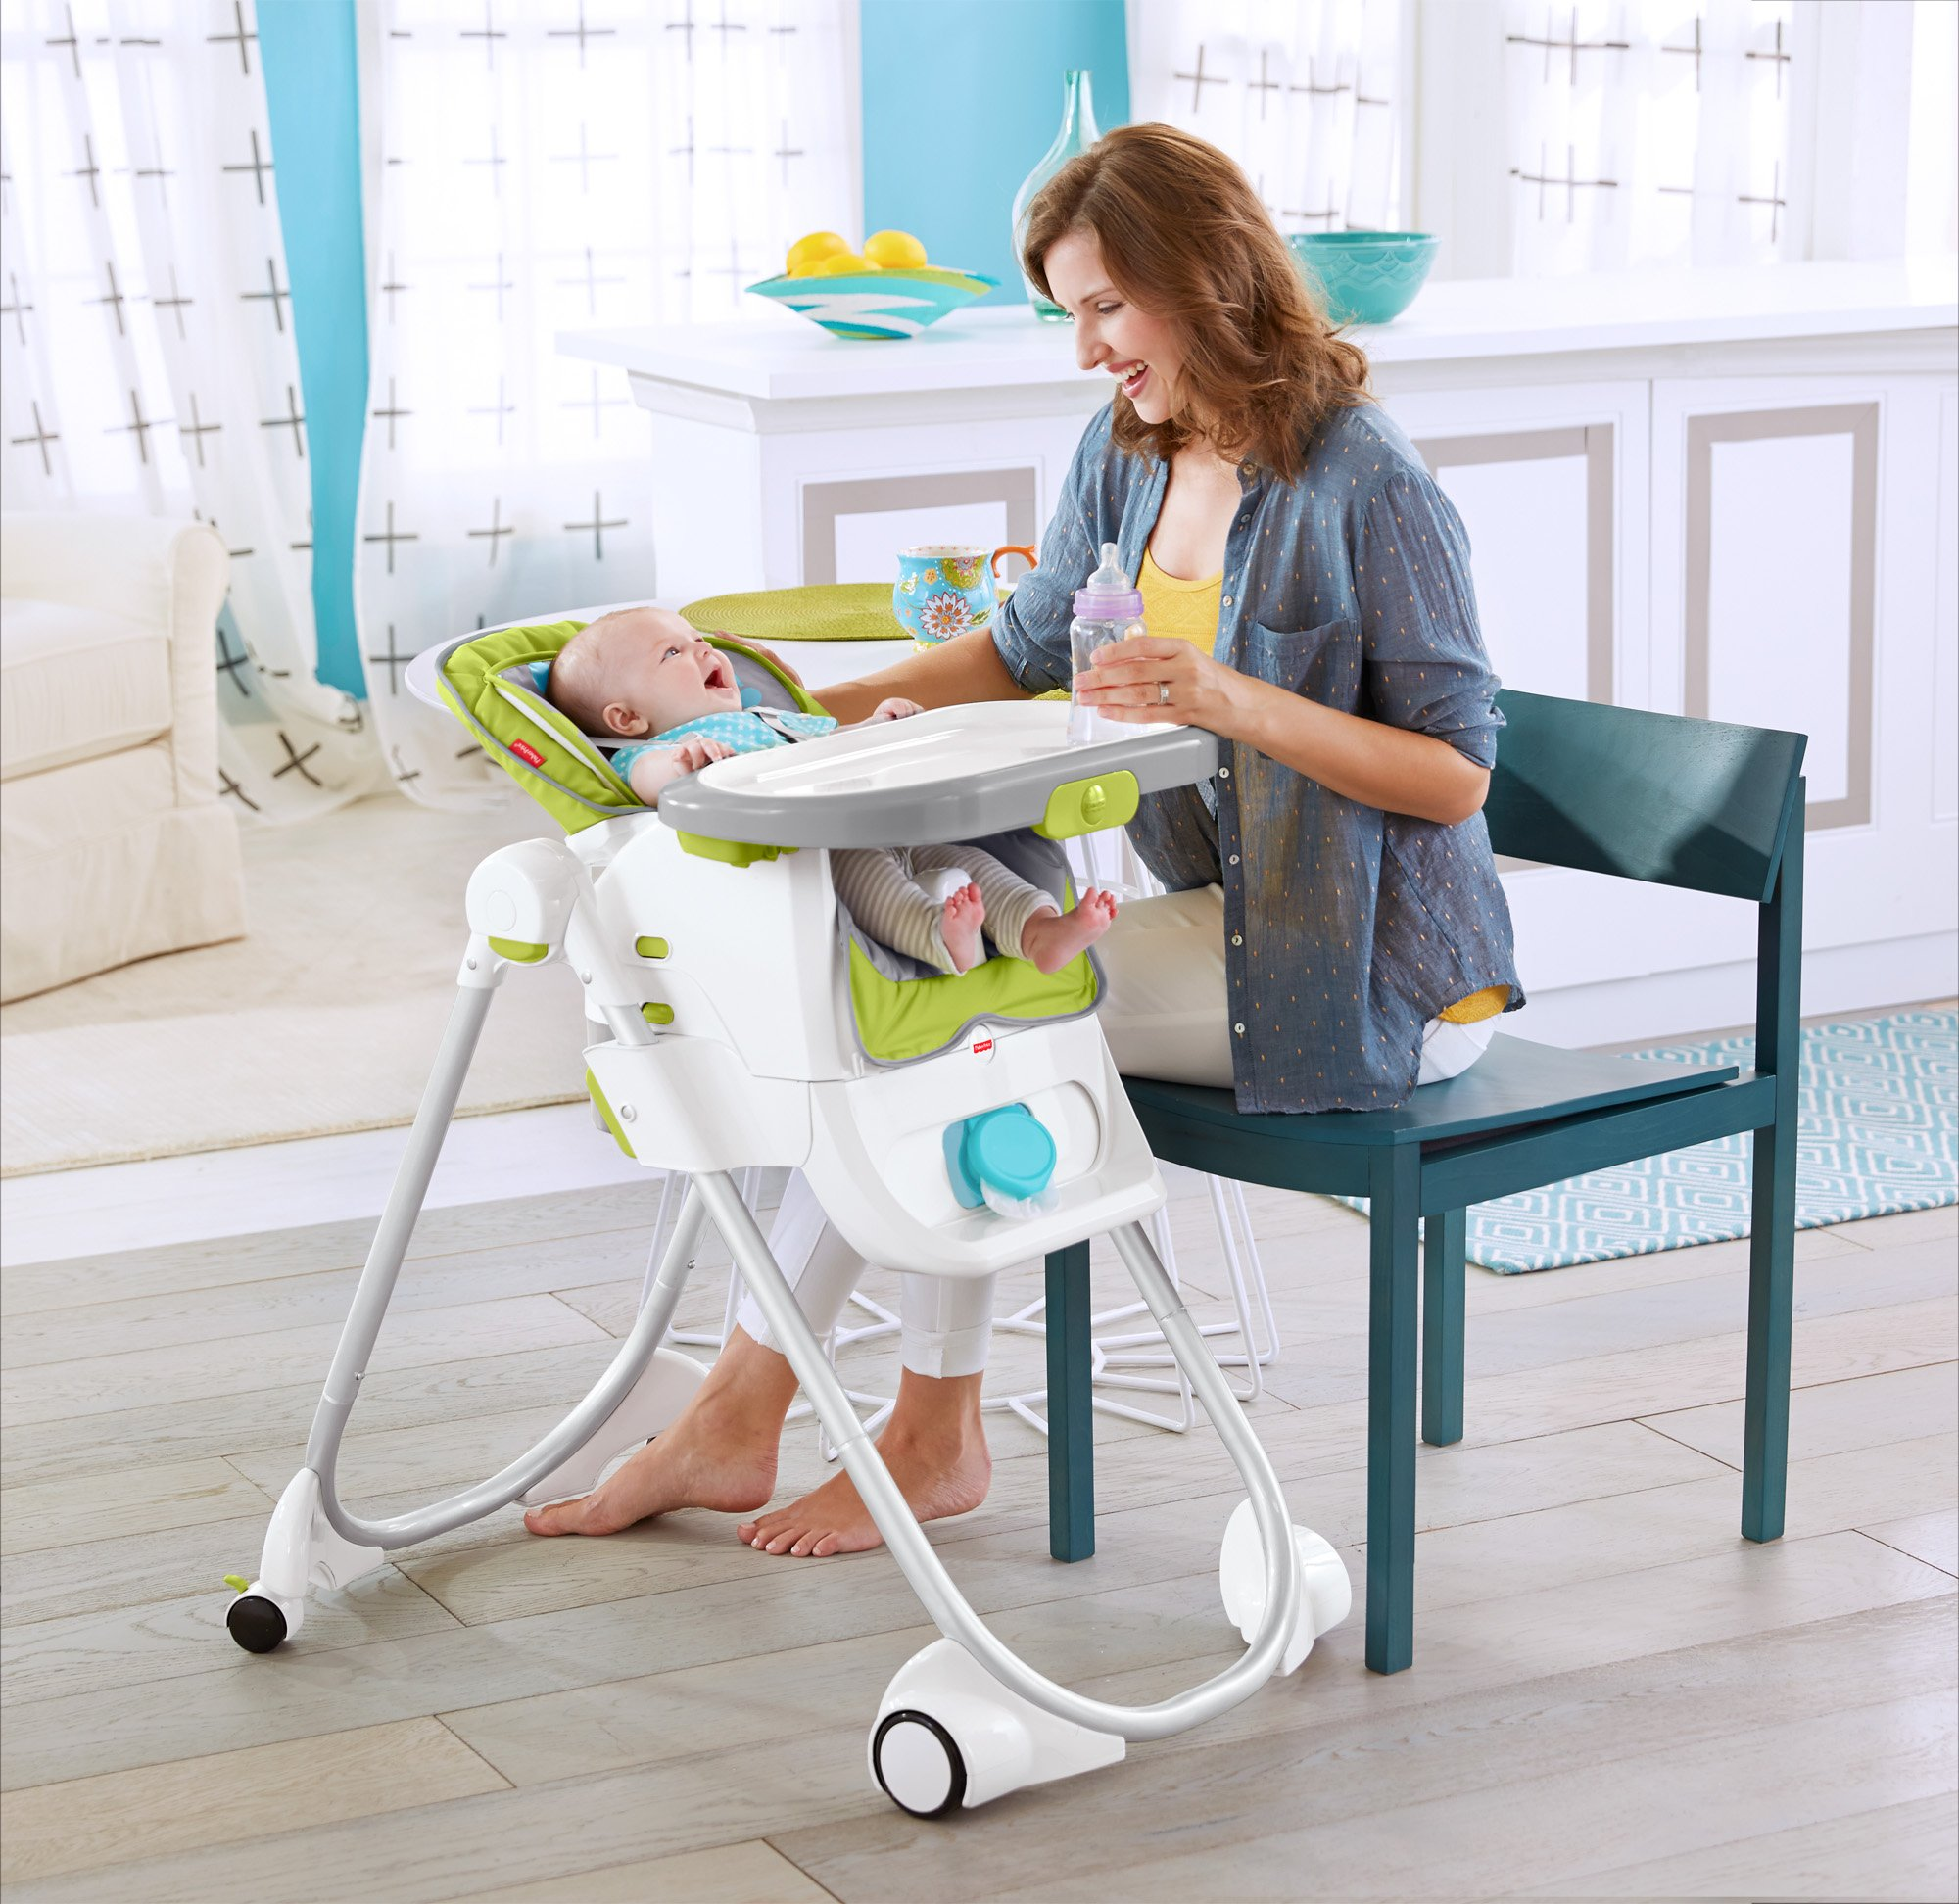 Fisher-Price 4-in-1 Total Clean High Chair, Green/Gray by Fisher-Price (Image #13)